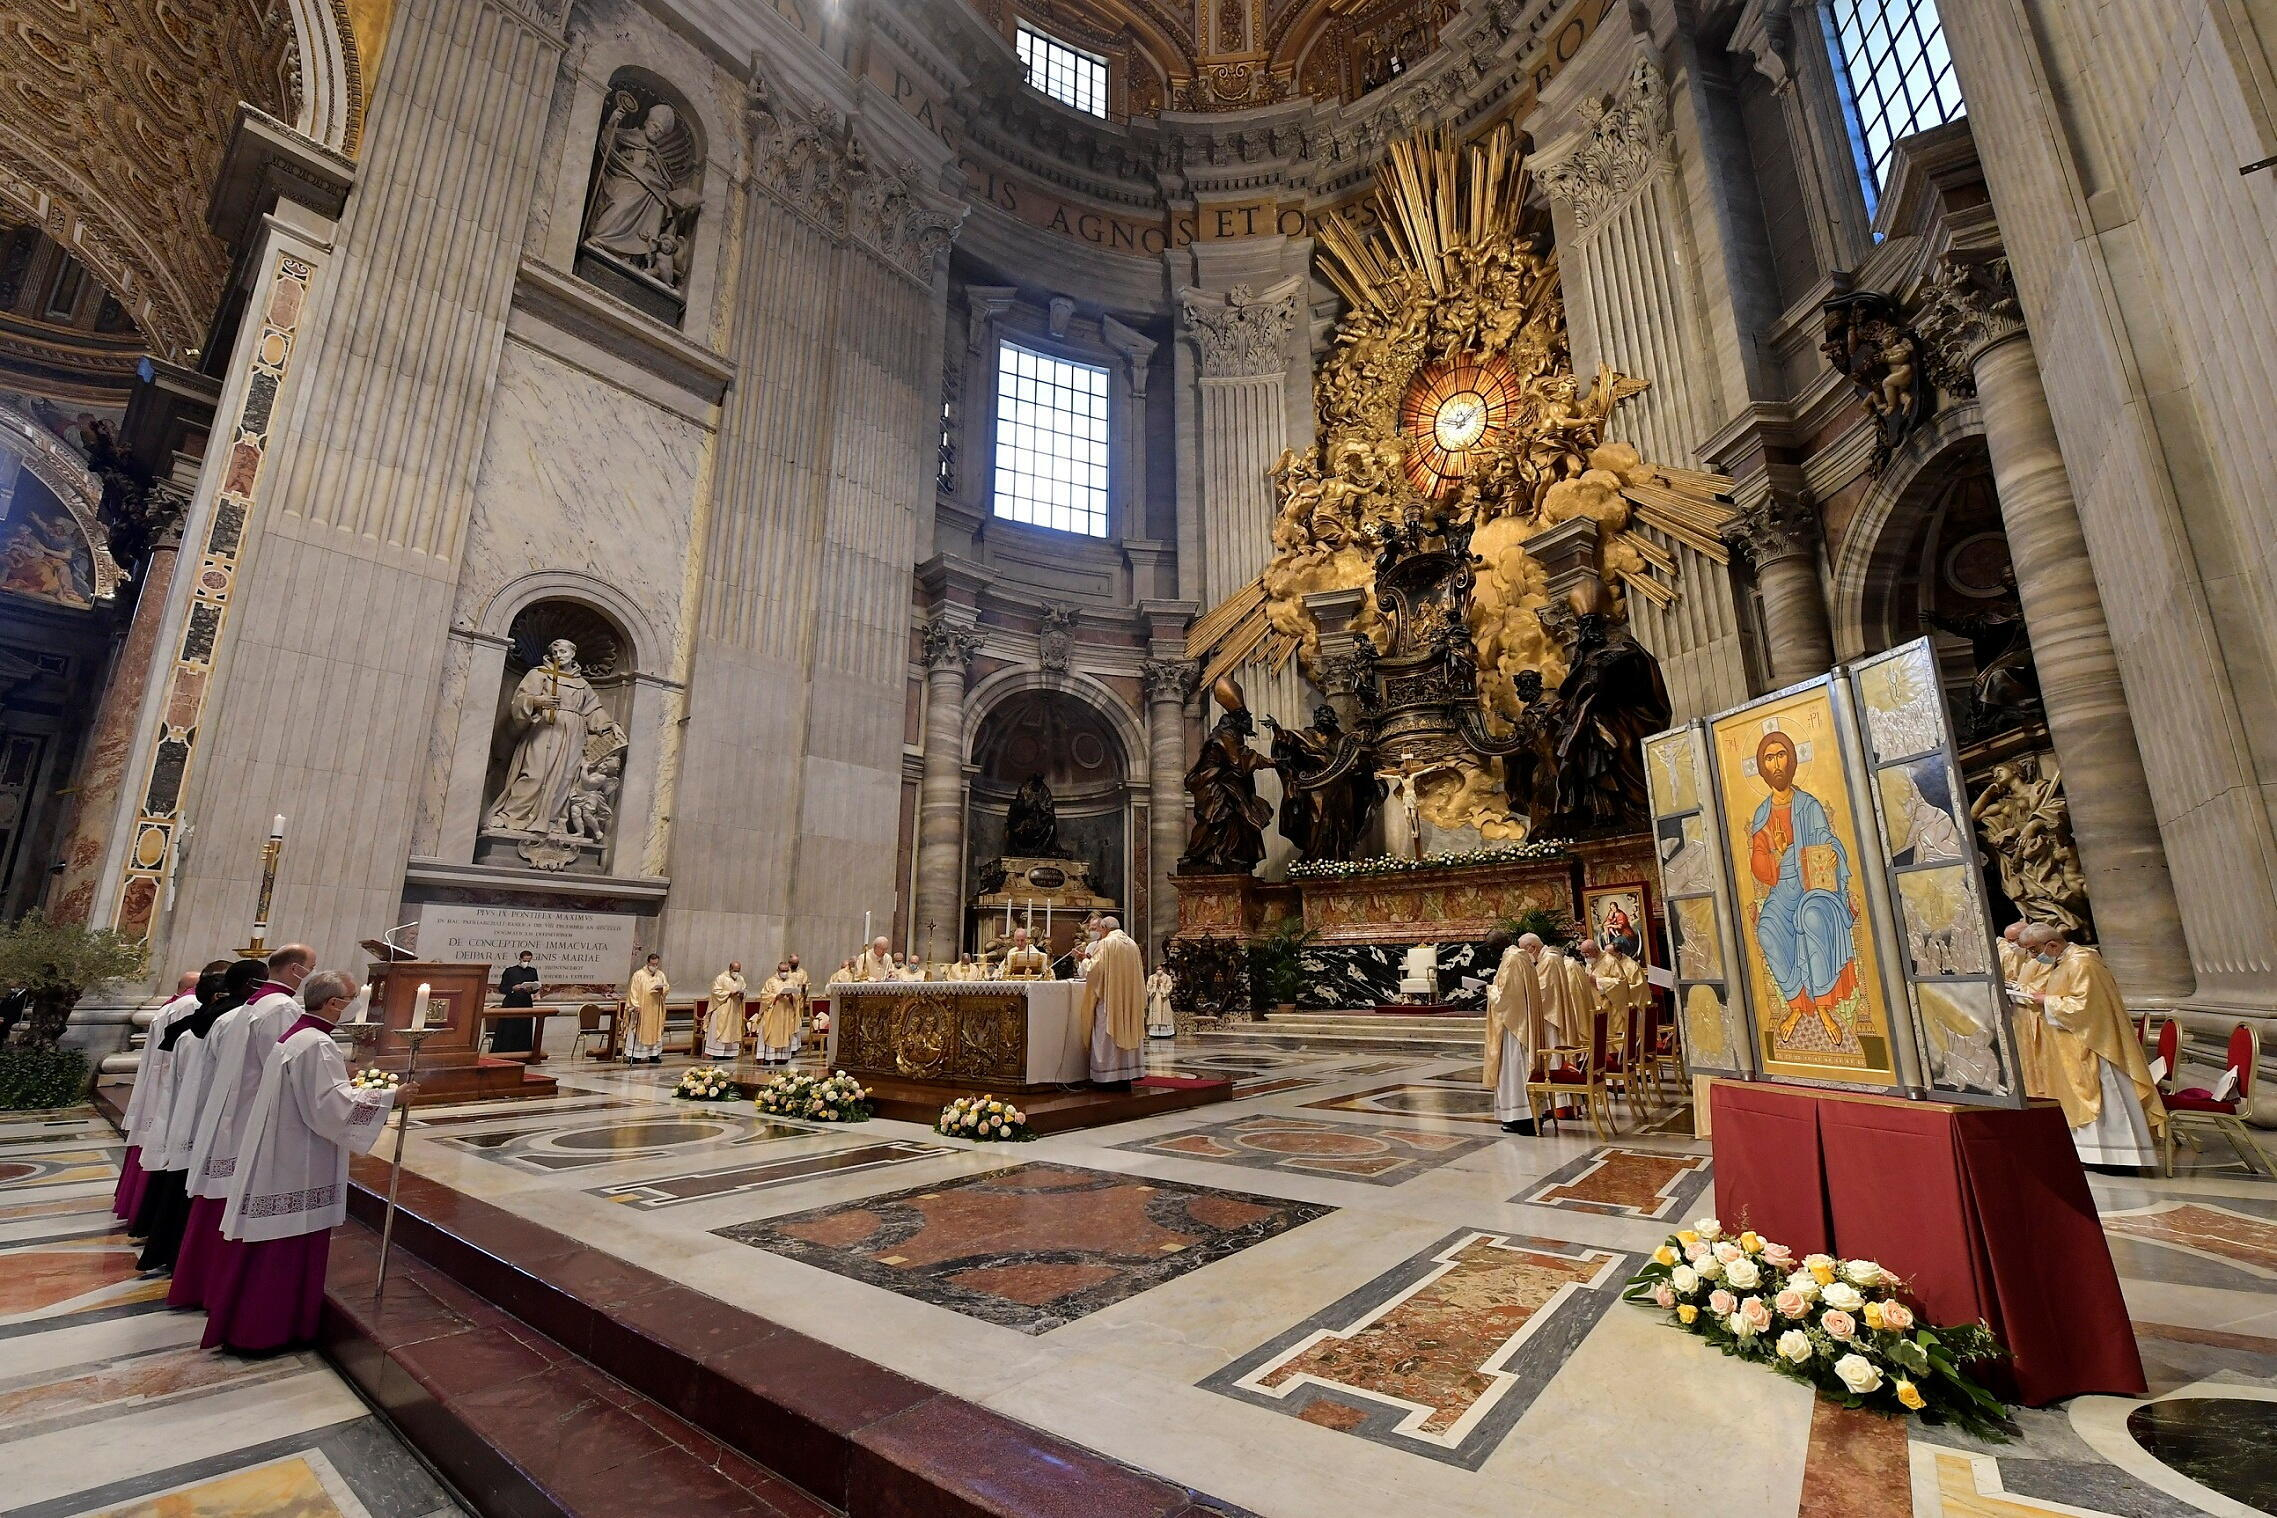 04/04/2021 11:22 RELIGION-EASTER/POPE Pope Francis celebrates the Eucharist during Easter Sunday Mass at St. Peter's Basilica at the Vatican Pope Francis celebrates the Eucharist during Easter Sunday Mass at St. Peter's Basilica at the Vatican April 4, 2021. Vatican Media/Handout via REUTERS ATTENTION EDITORS - THIS IMAGE WAS PROVIDED BY A THIRD PARTY.2021-04-04T092231Z_306289742_RC2XOM91UXP5_RTRMADP_3_RELIGION-EASTER-POPE